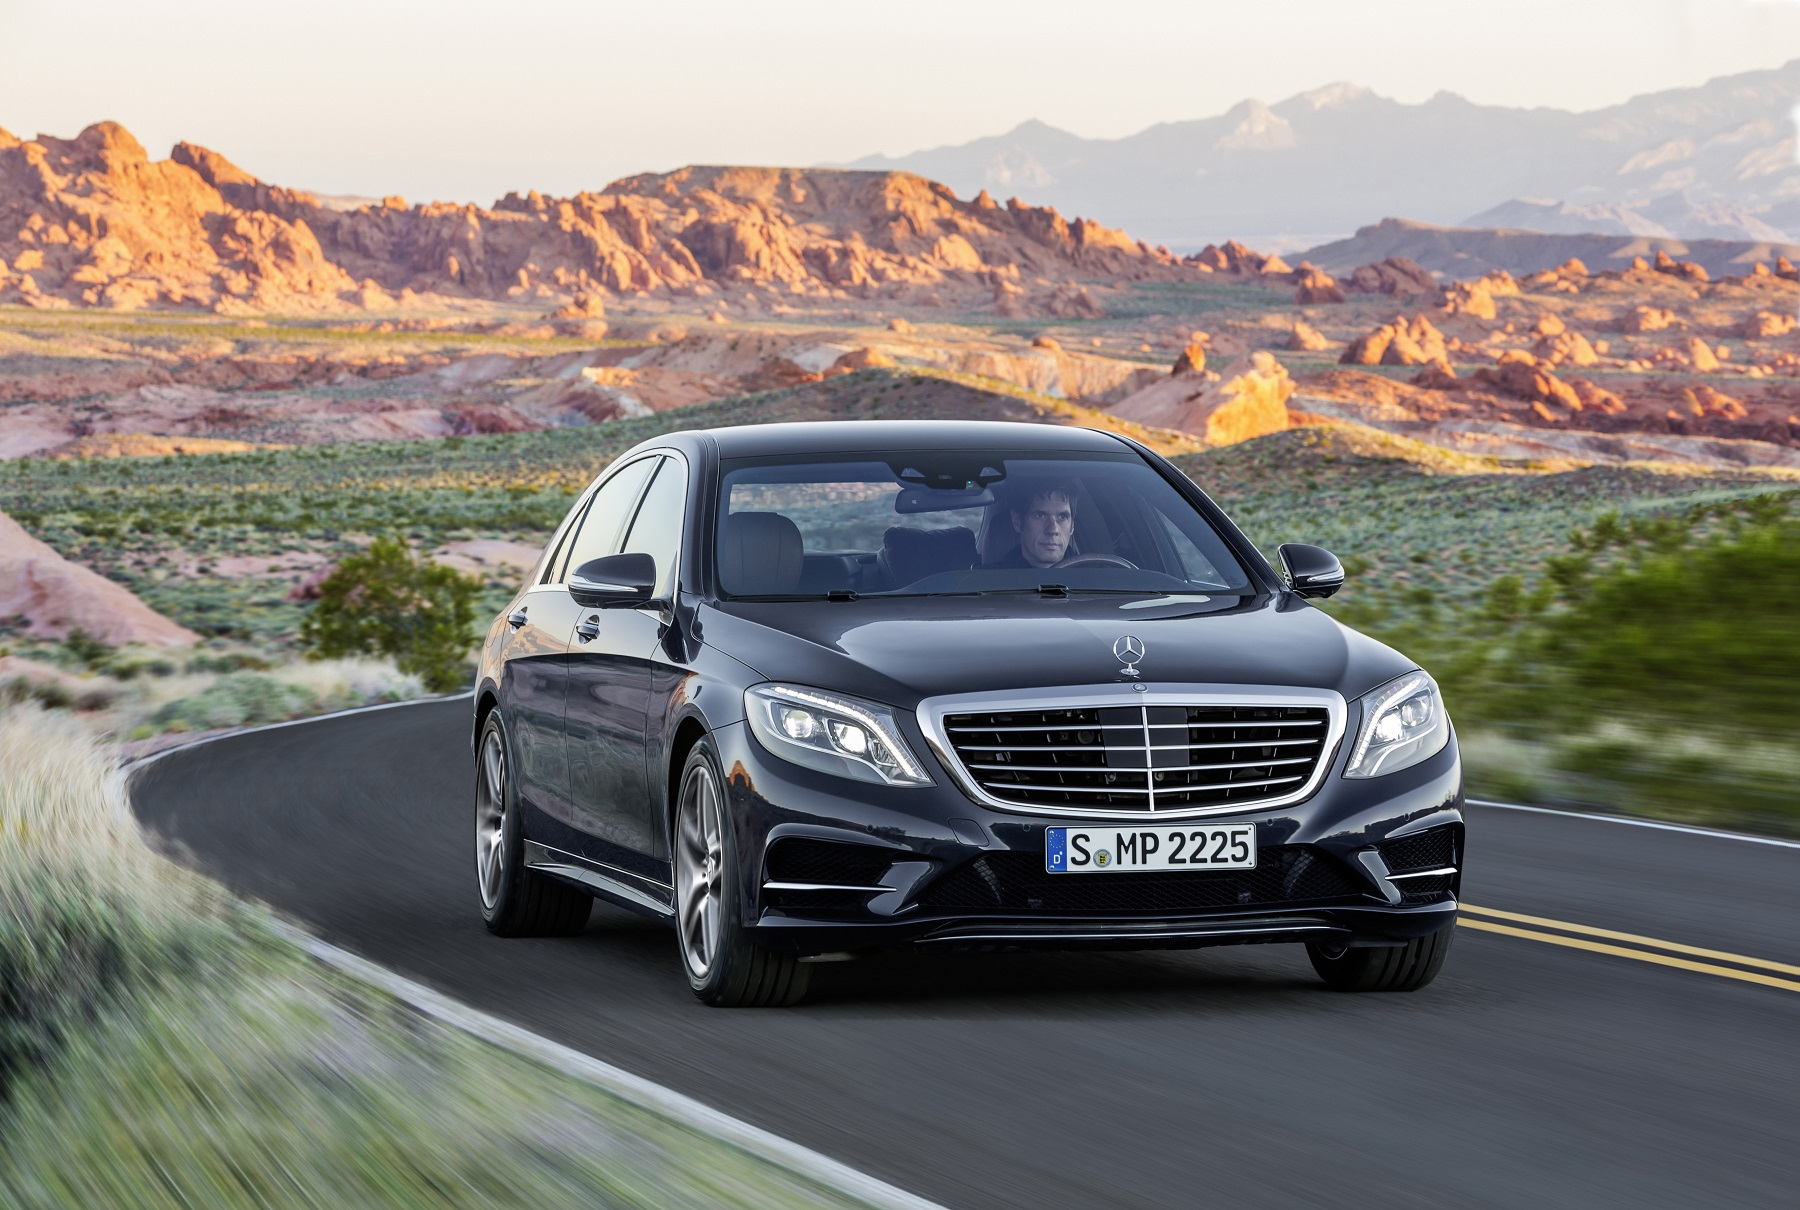 Manufacturer photo: With its long hood, the flowing, domed roof line and the gently slanting rear end, the new Mercedes-Benz S-Class has classic sedan proportions